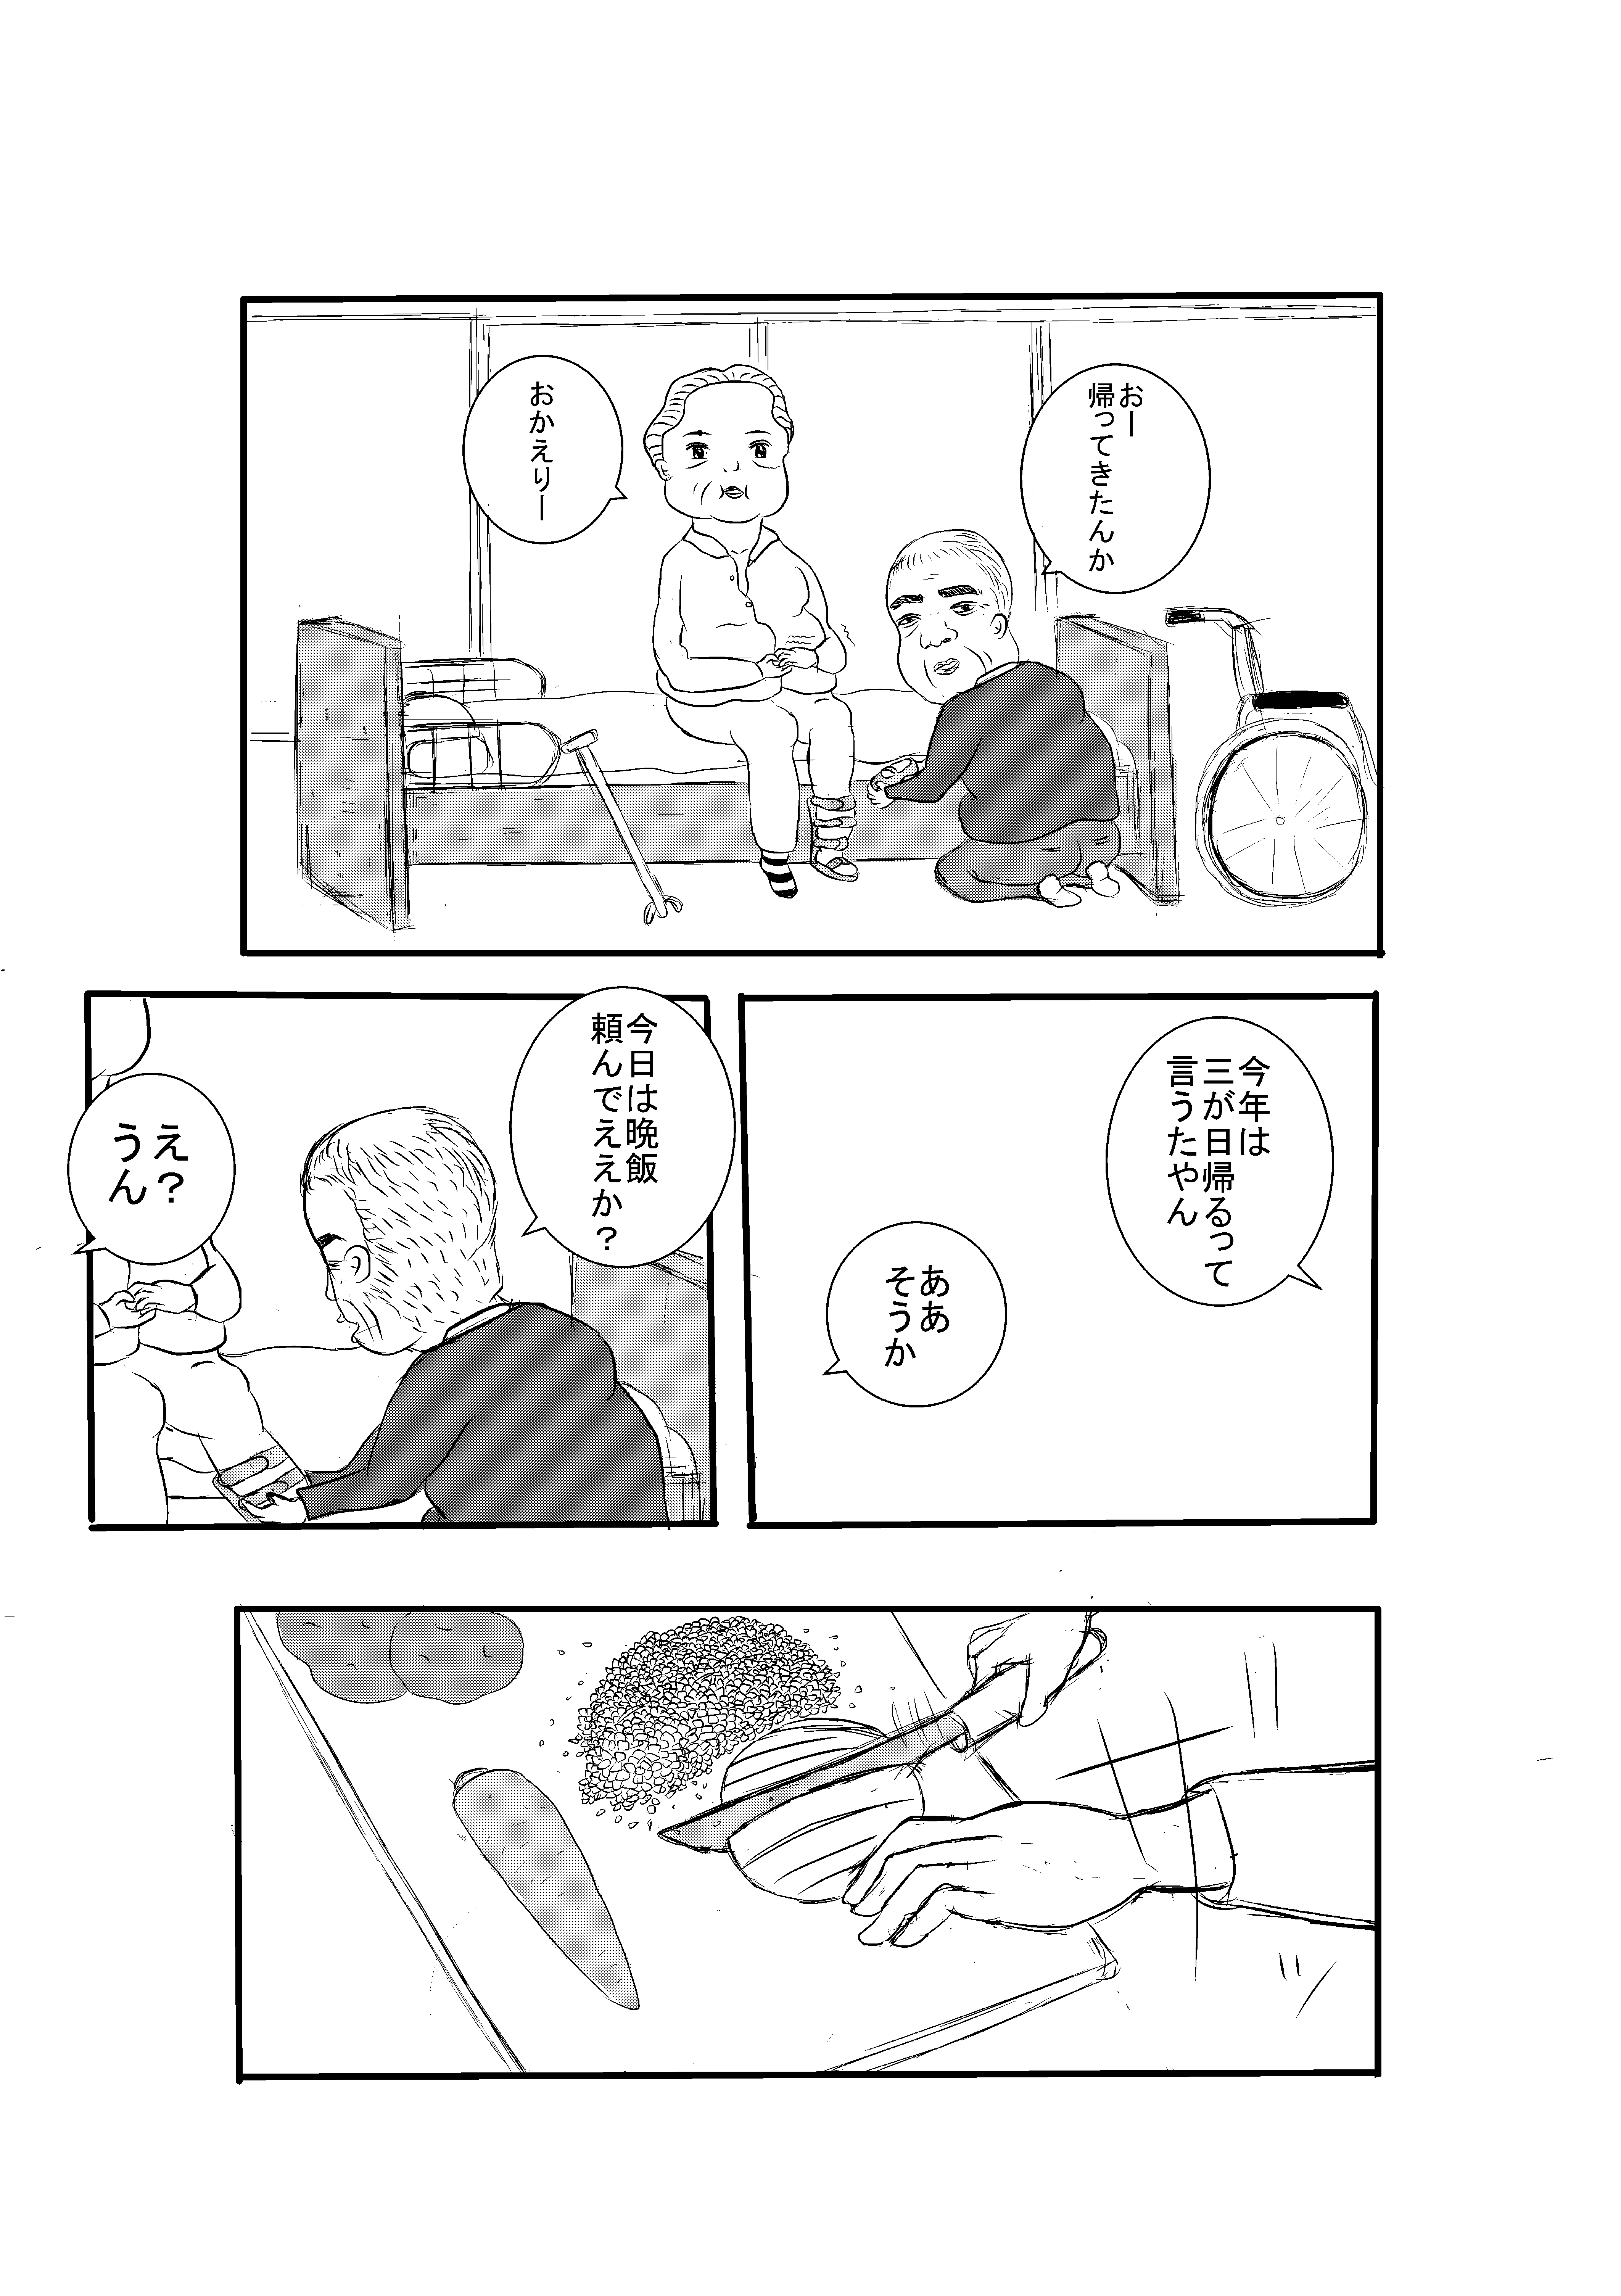 20180113224200374.png